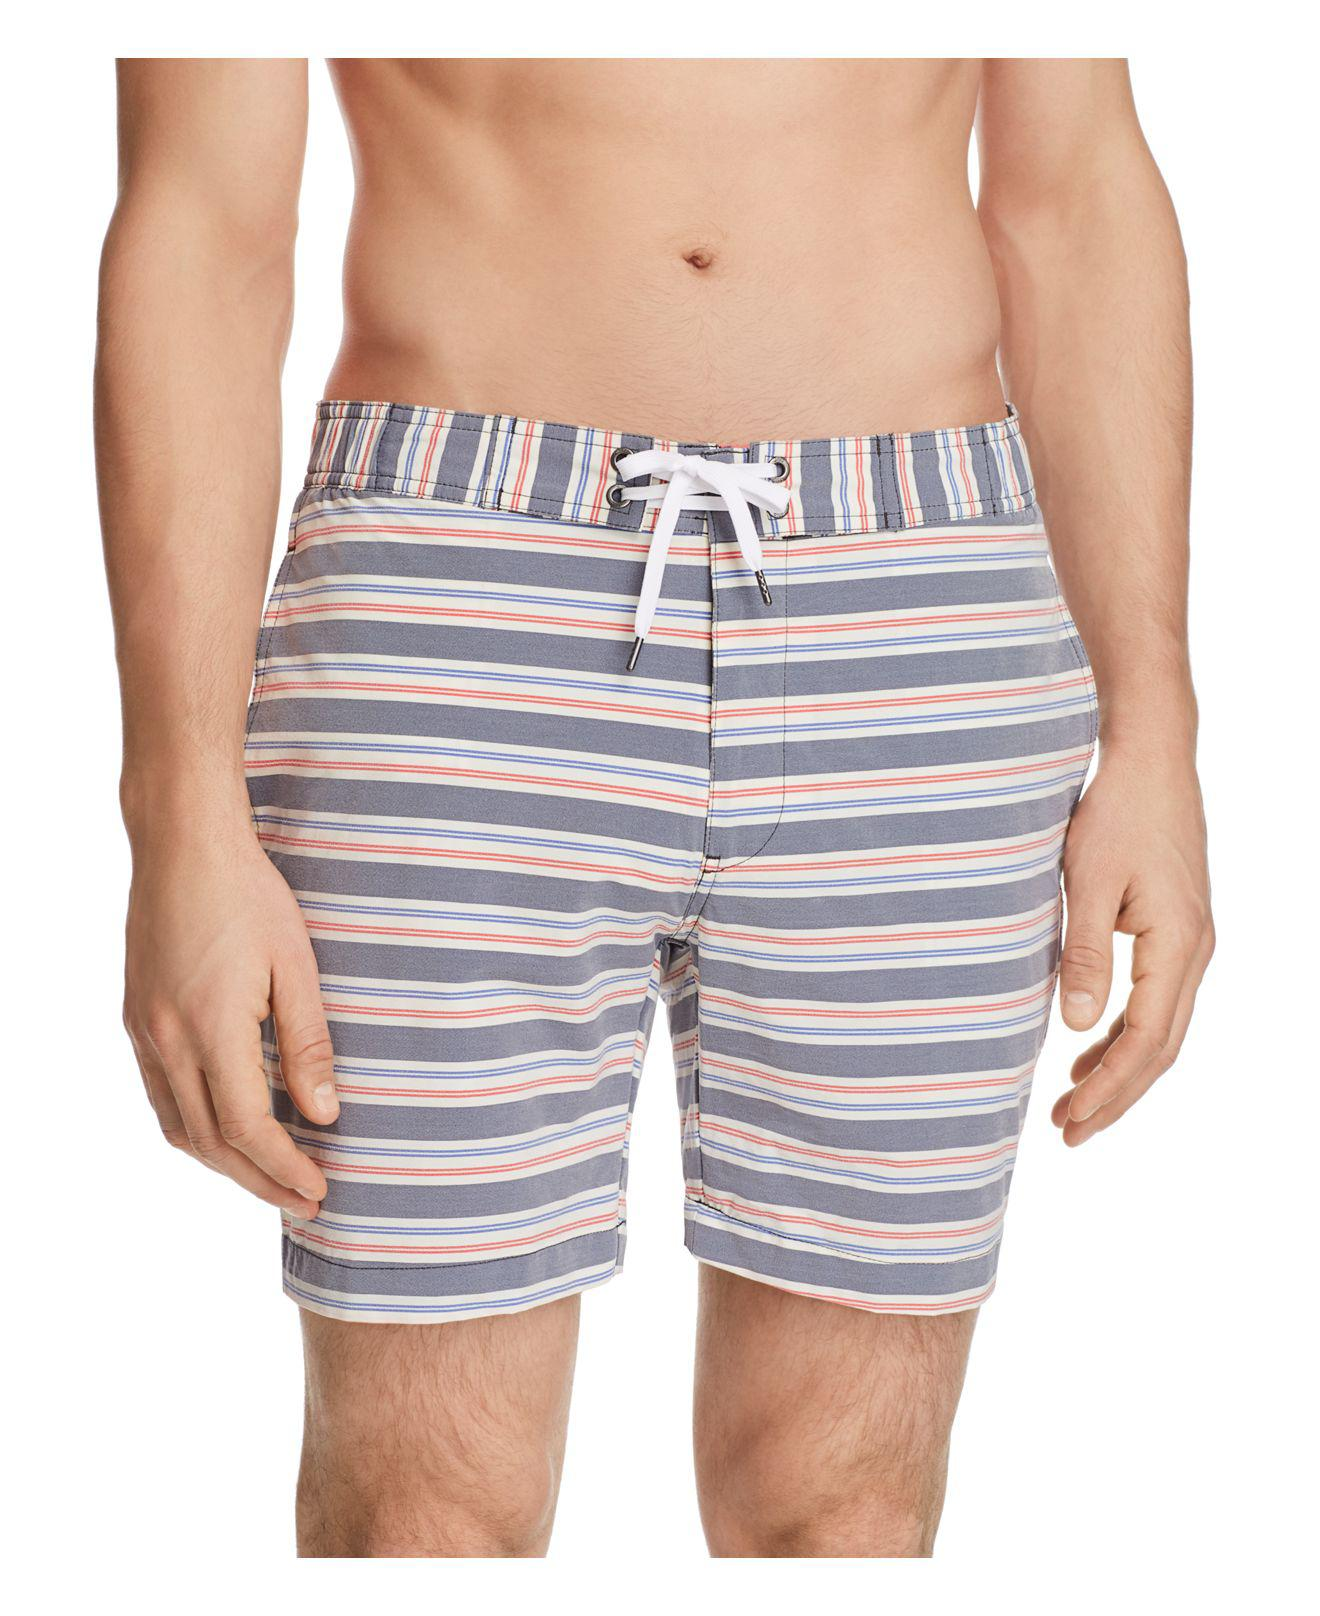 Free Shipping Largest Supplier Sale Real Mens Alek Gingham Swim Trunks Onia Clearance 100% Authentic Free Shipping Pre Order 100% Authentic Cheap Online k6tb8WOG